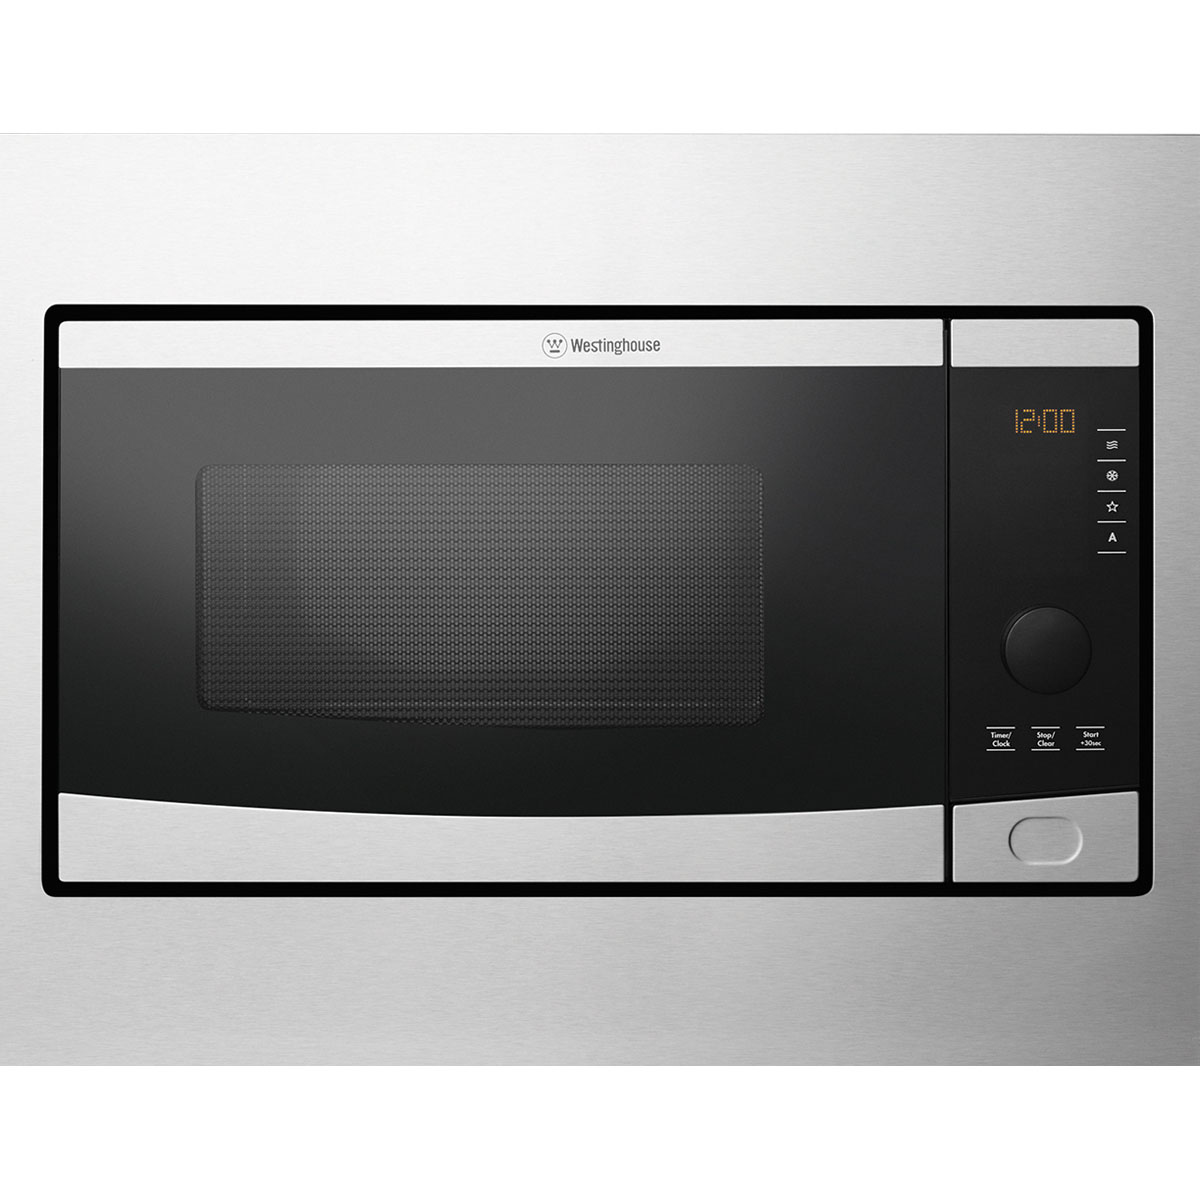 Westinghouse WMB2802SA 28L Built-In Microwave Oven 900W